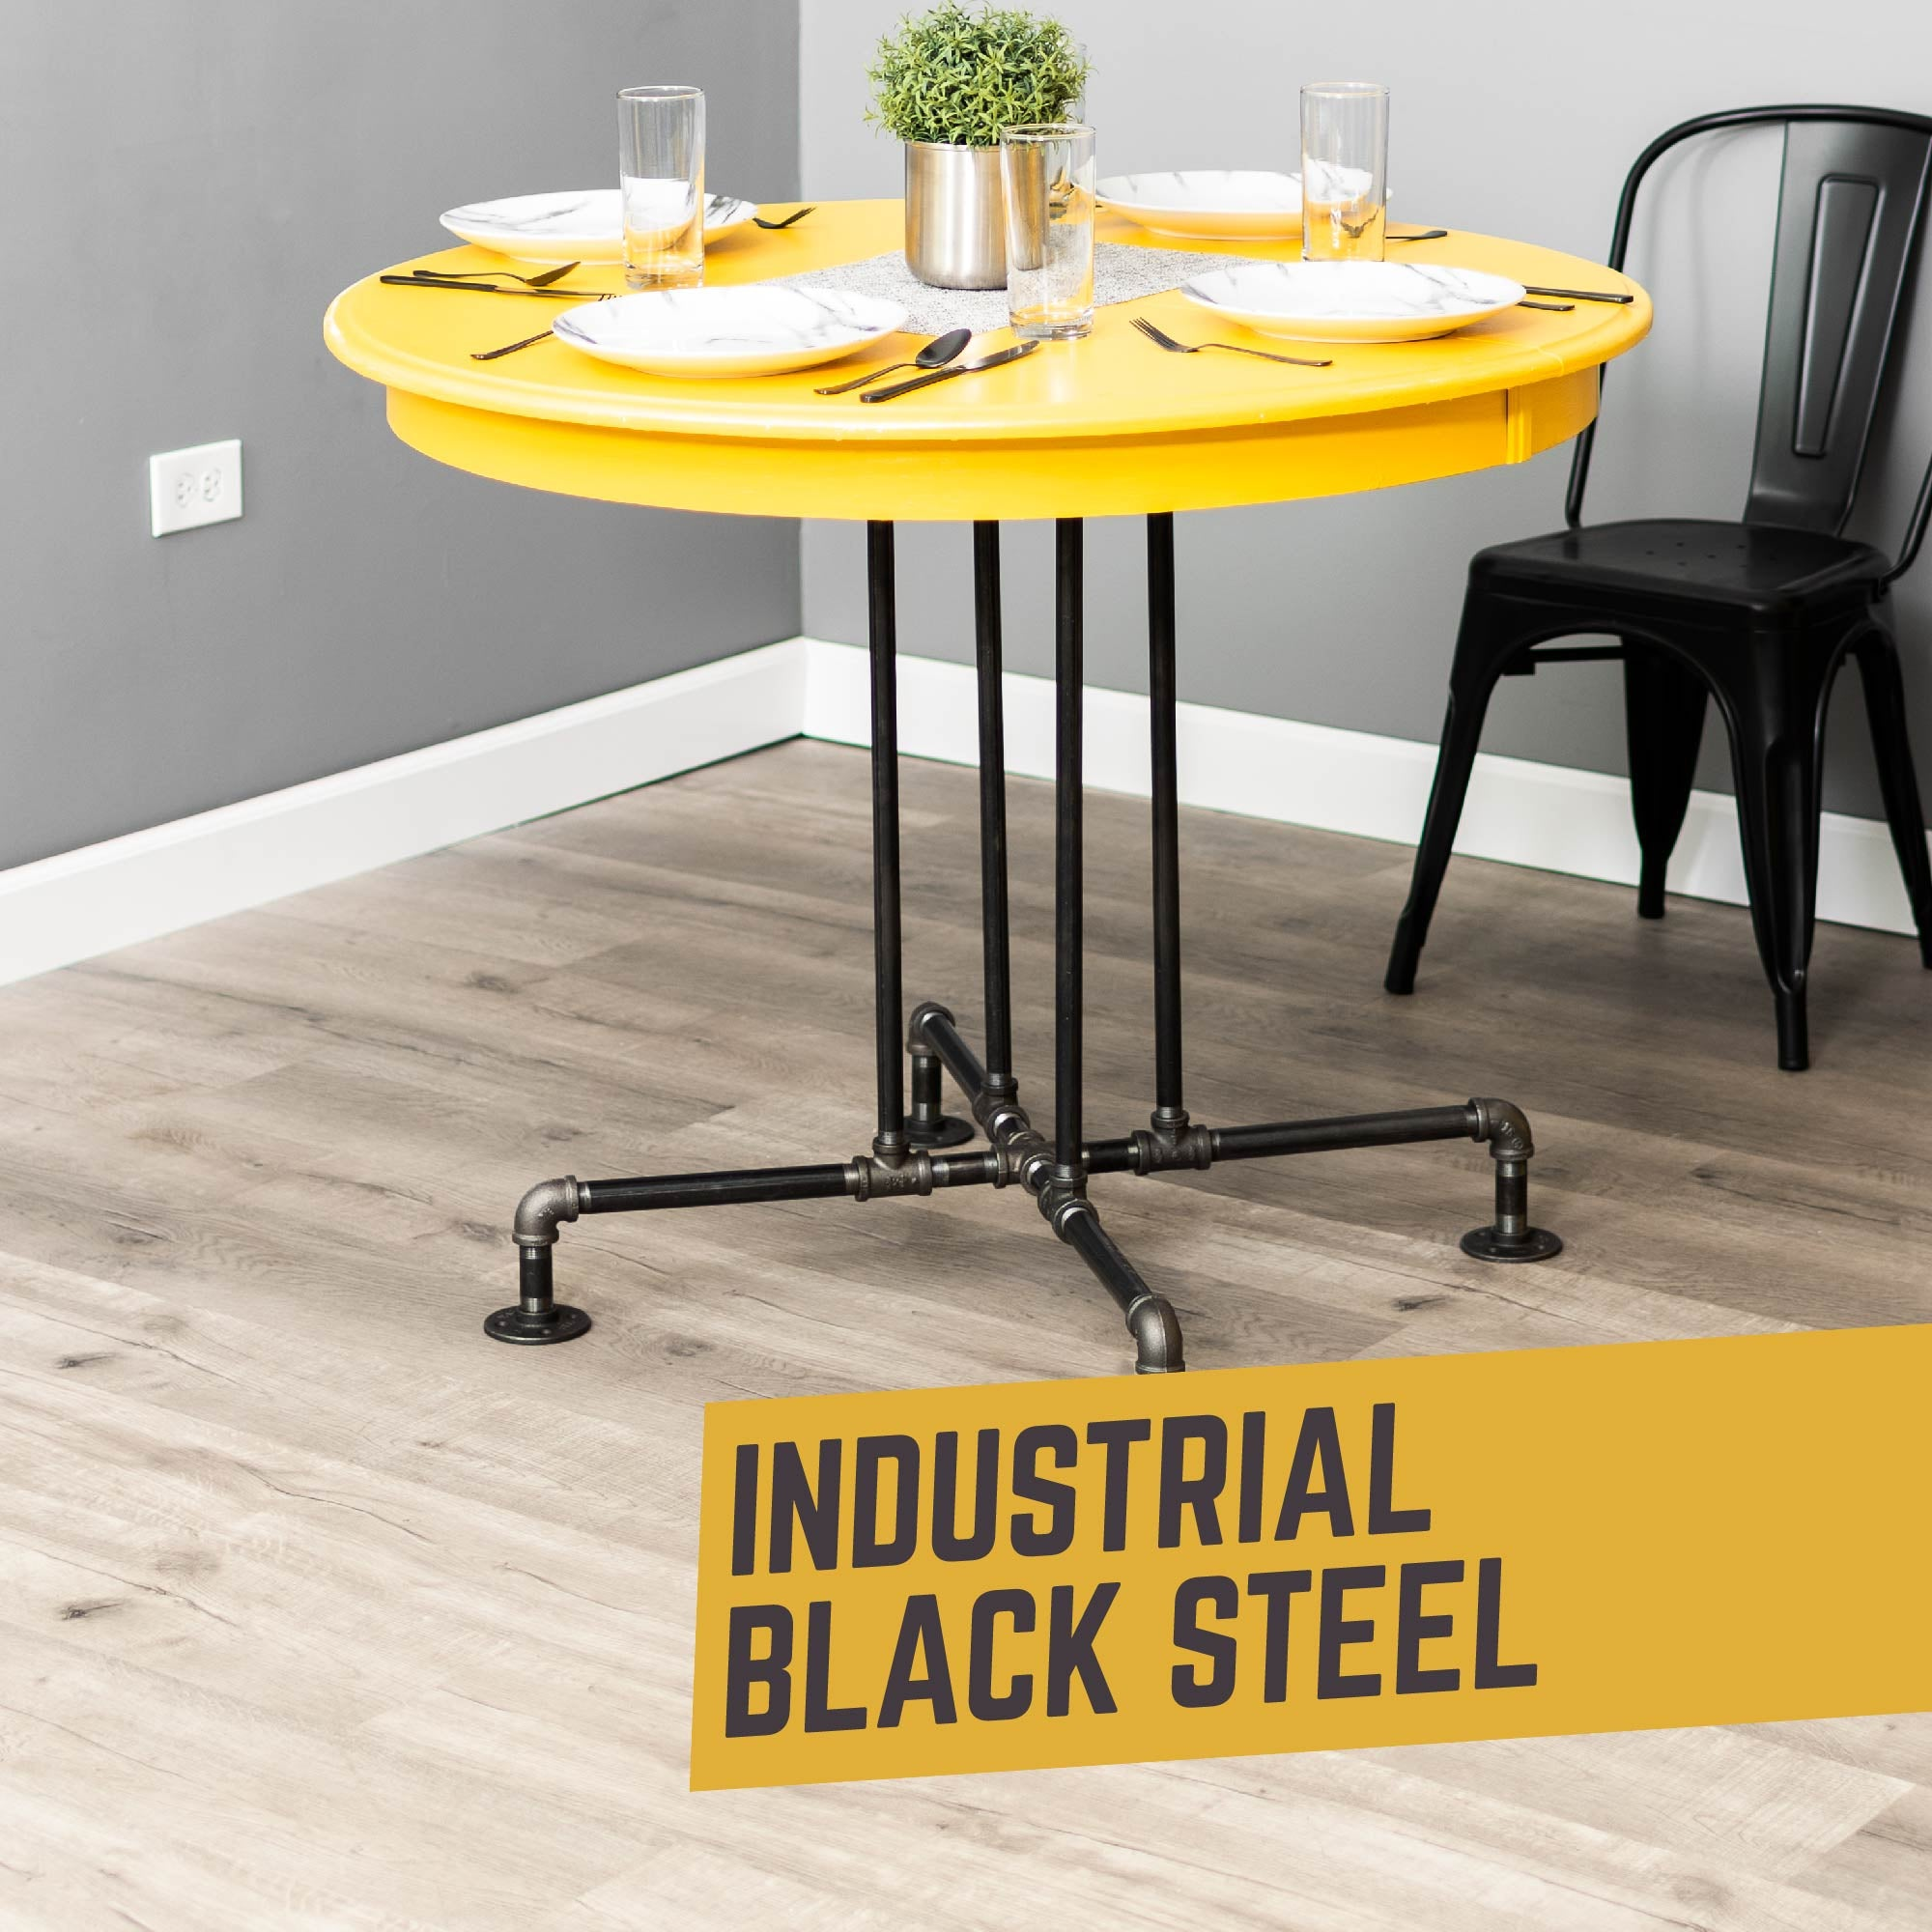 Blackjack Kitchen Table By PIPE DECOR